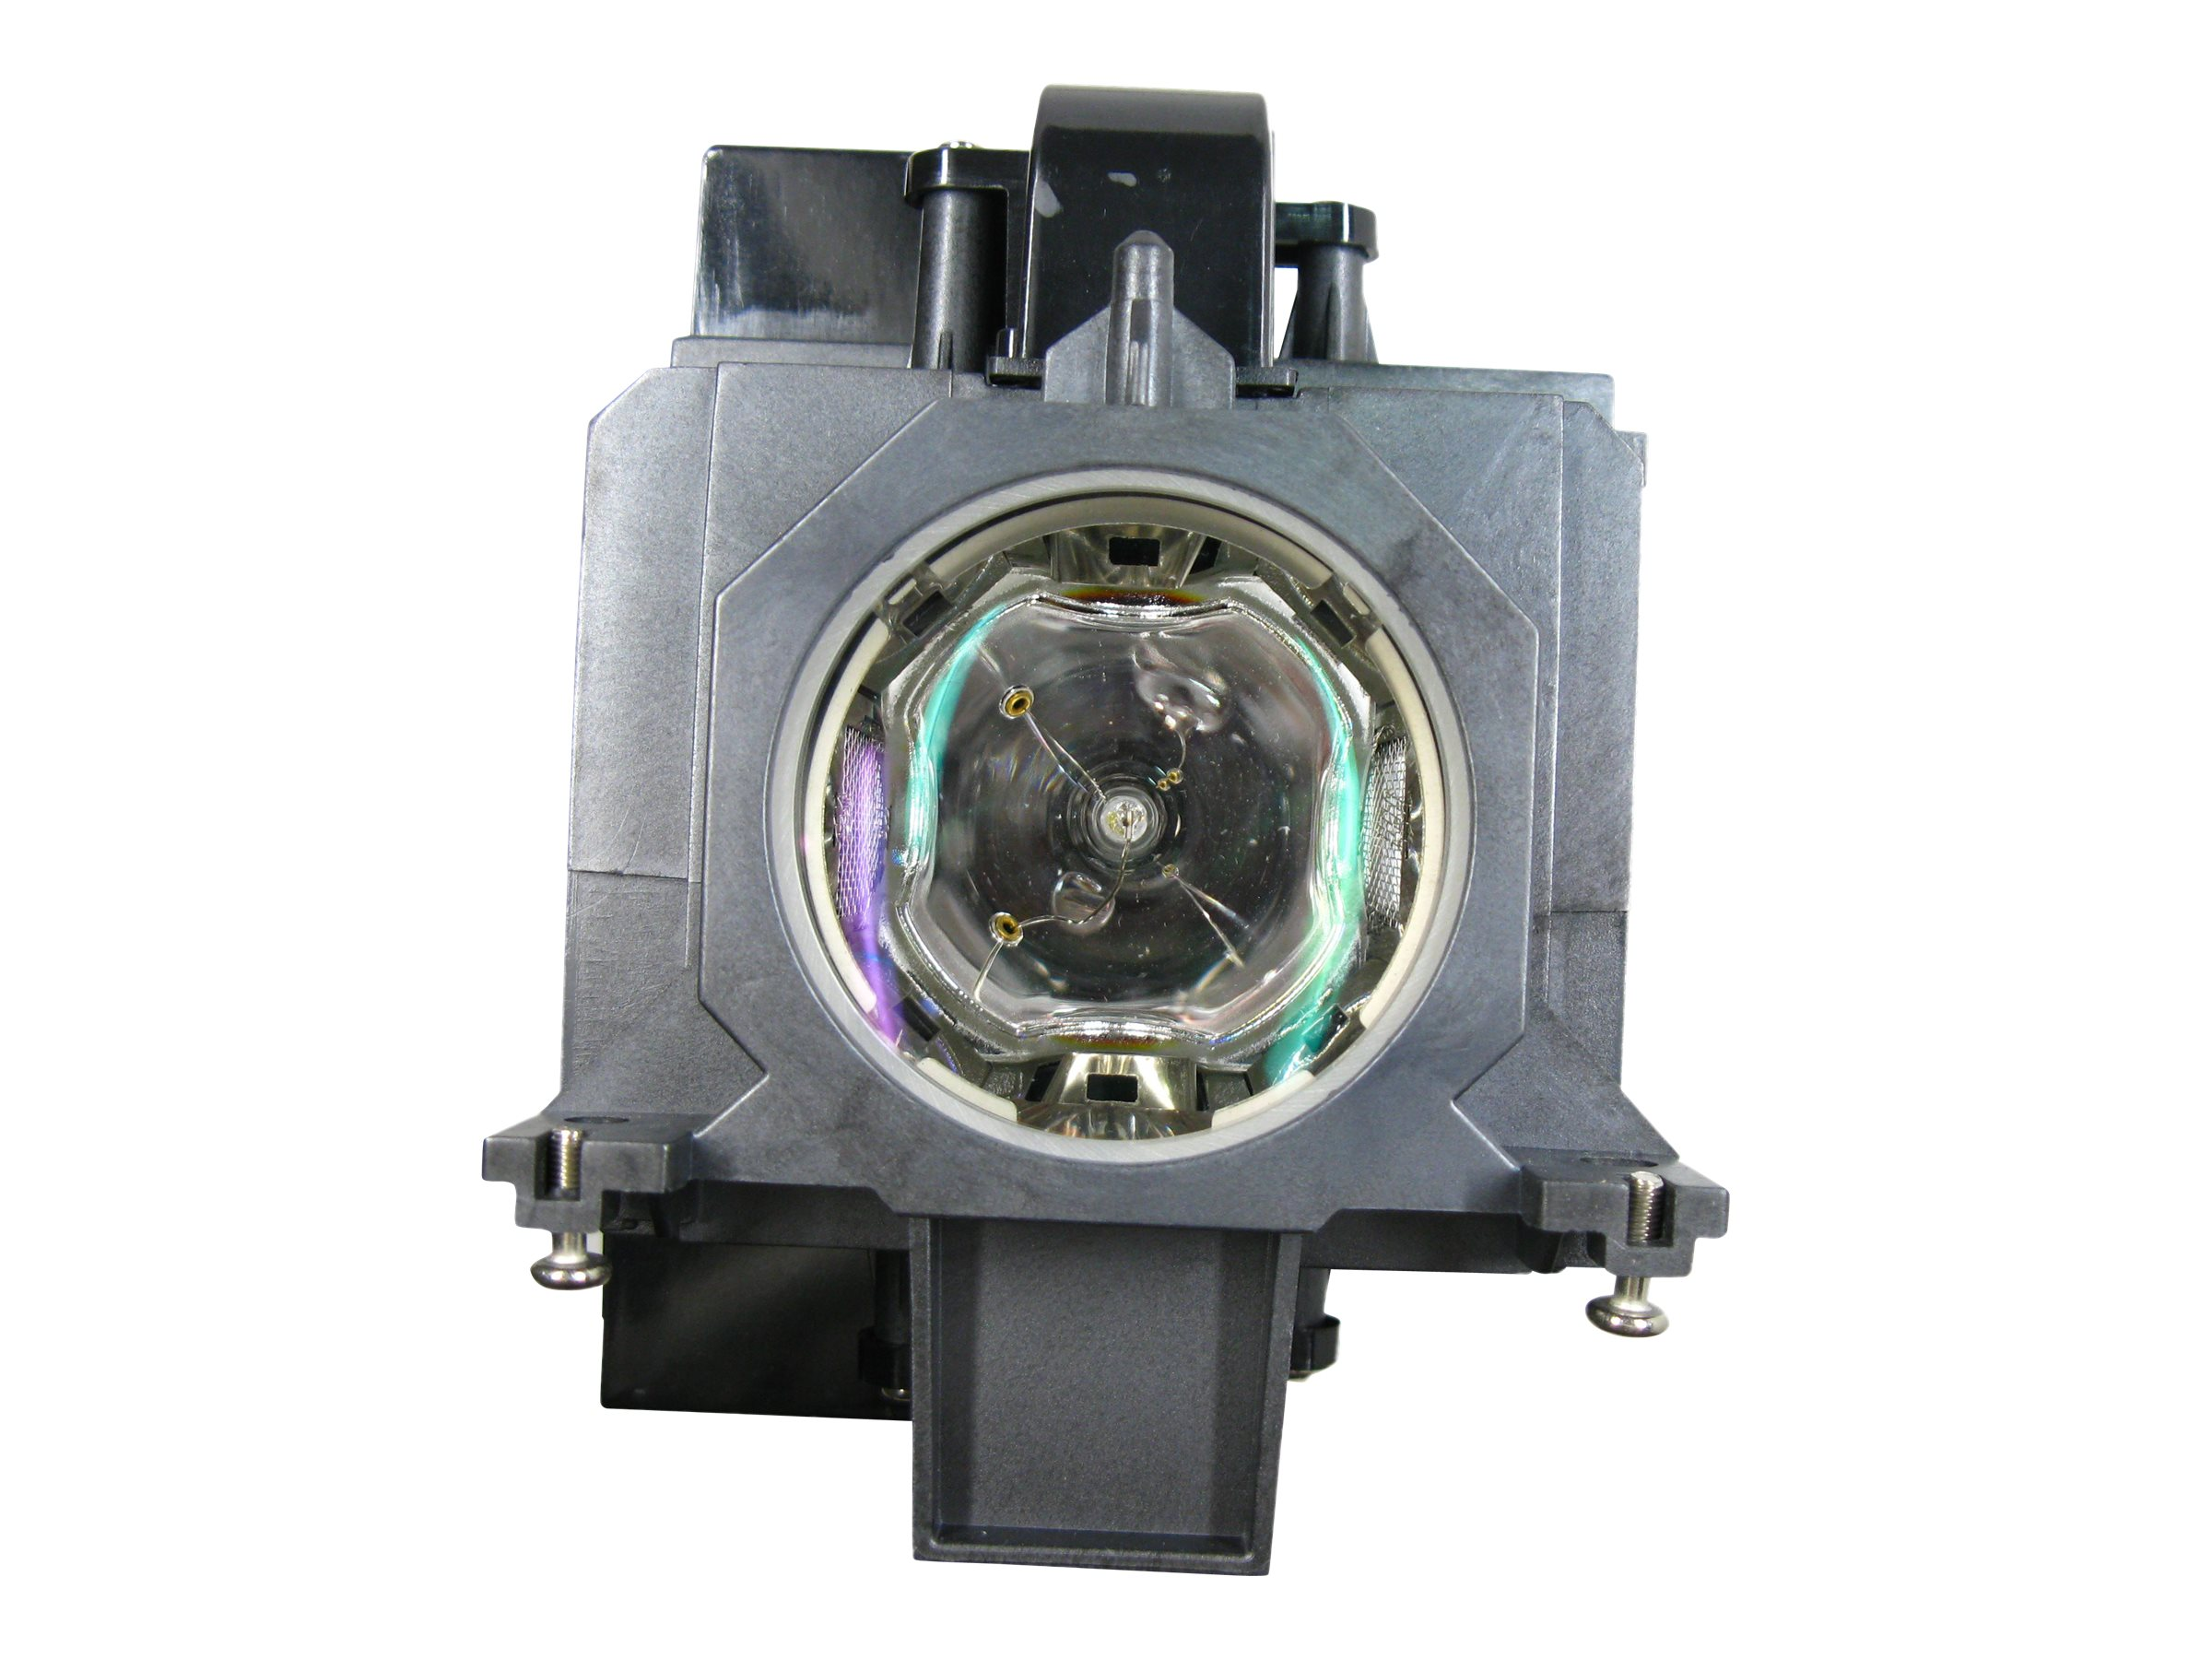 V7 Replacement Lamp for PLC-XM100, PLC-XM5000, PLC-XM80, VPL2180-1N